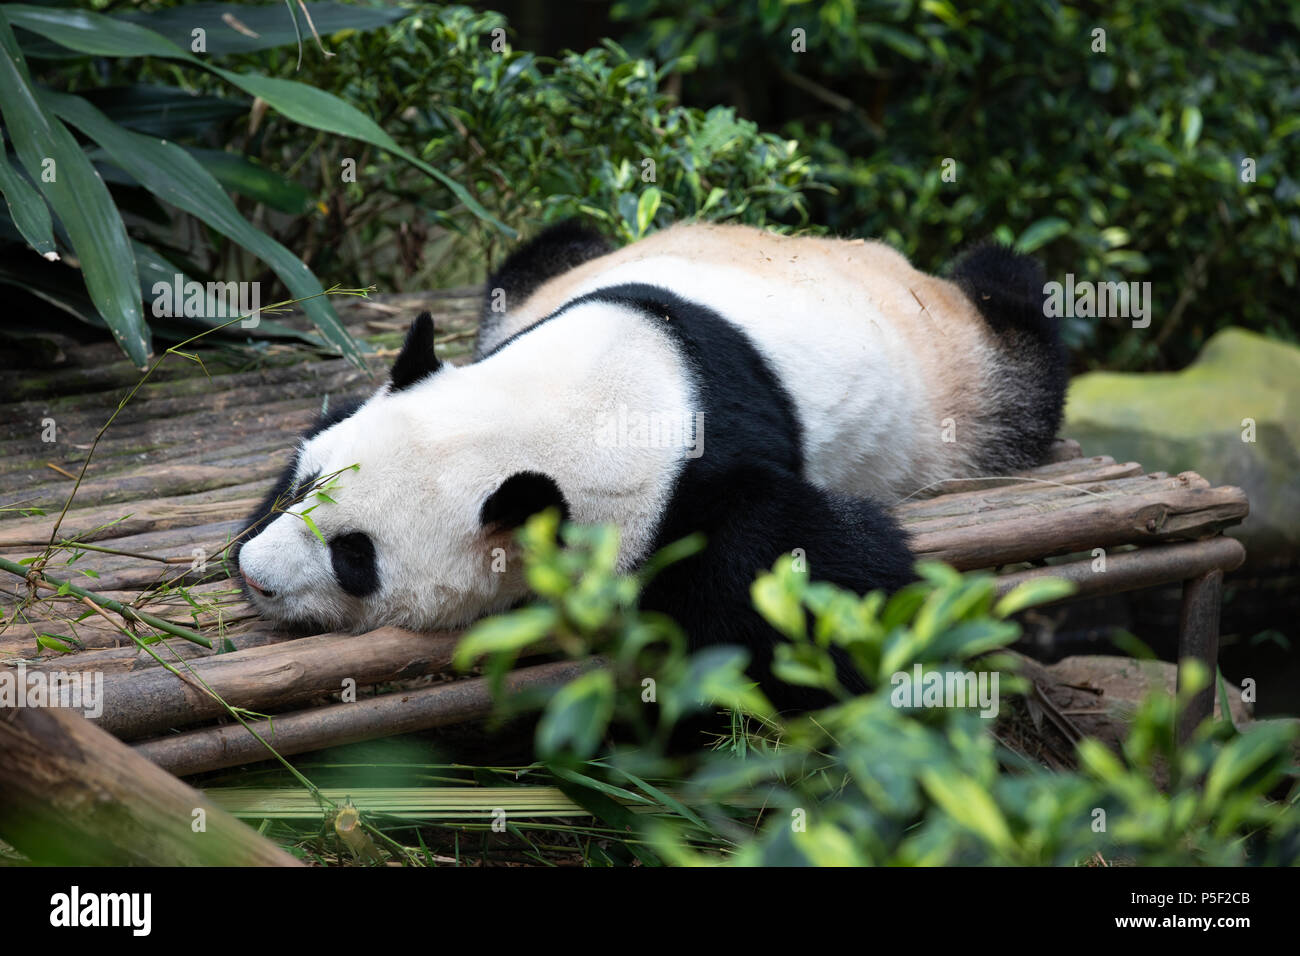 Portrait of an endangered black and white panda bear sleeping in the greenery. Singapore. - Stock Image